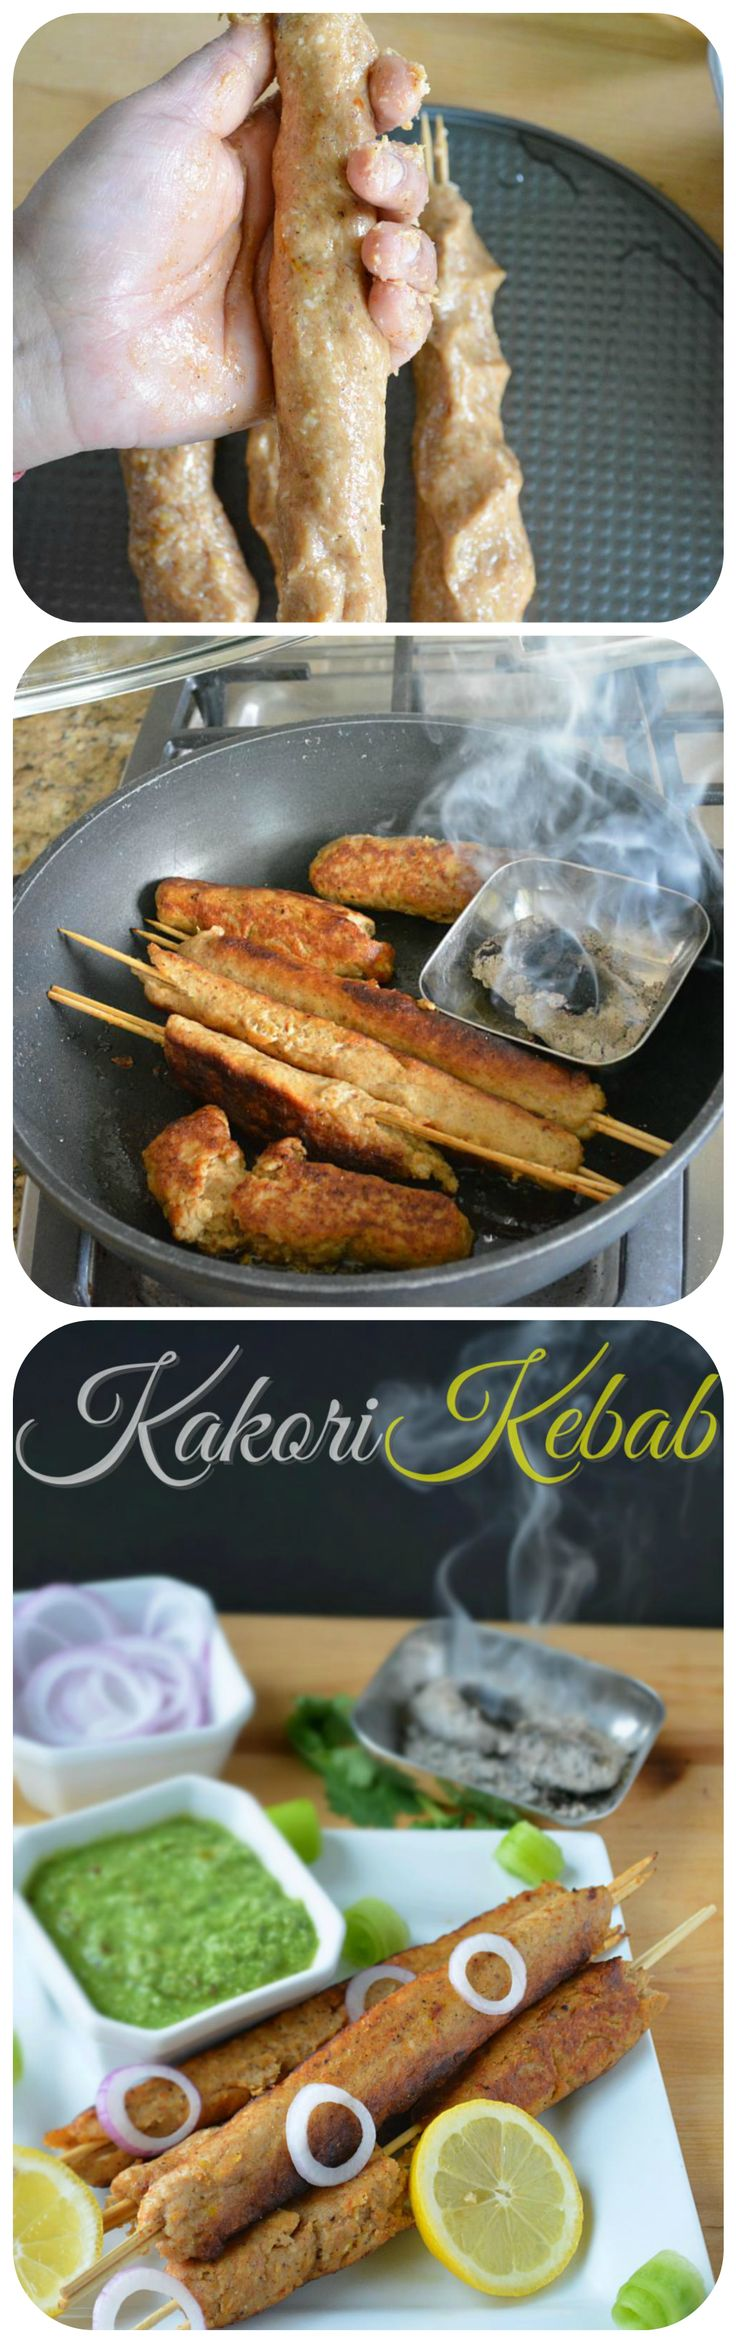 From the #Mughlai #Cuisine comes a #delicious #Kakorikebab #recipe - #Juicy and tender #kebab recipe where #minced #chicken combined with #aromatic #spices creates a lip-smacking and delicious kebabs. #kebab #kababrecipe #succulent #yummy #indiancuisine #indianfood #indianrecipes #appetizers #snacktime #nonvegsnacks ‬ ‪#‎succulent‬ ‪#‎yummy‬ ‪#‎indiancuisine‬ #homemade